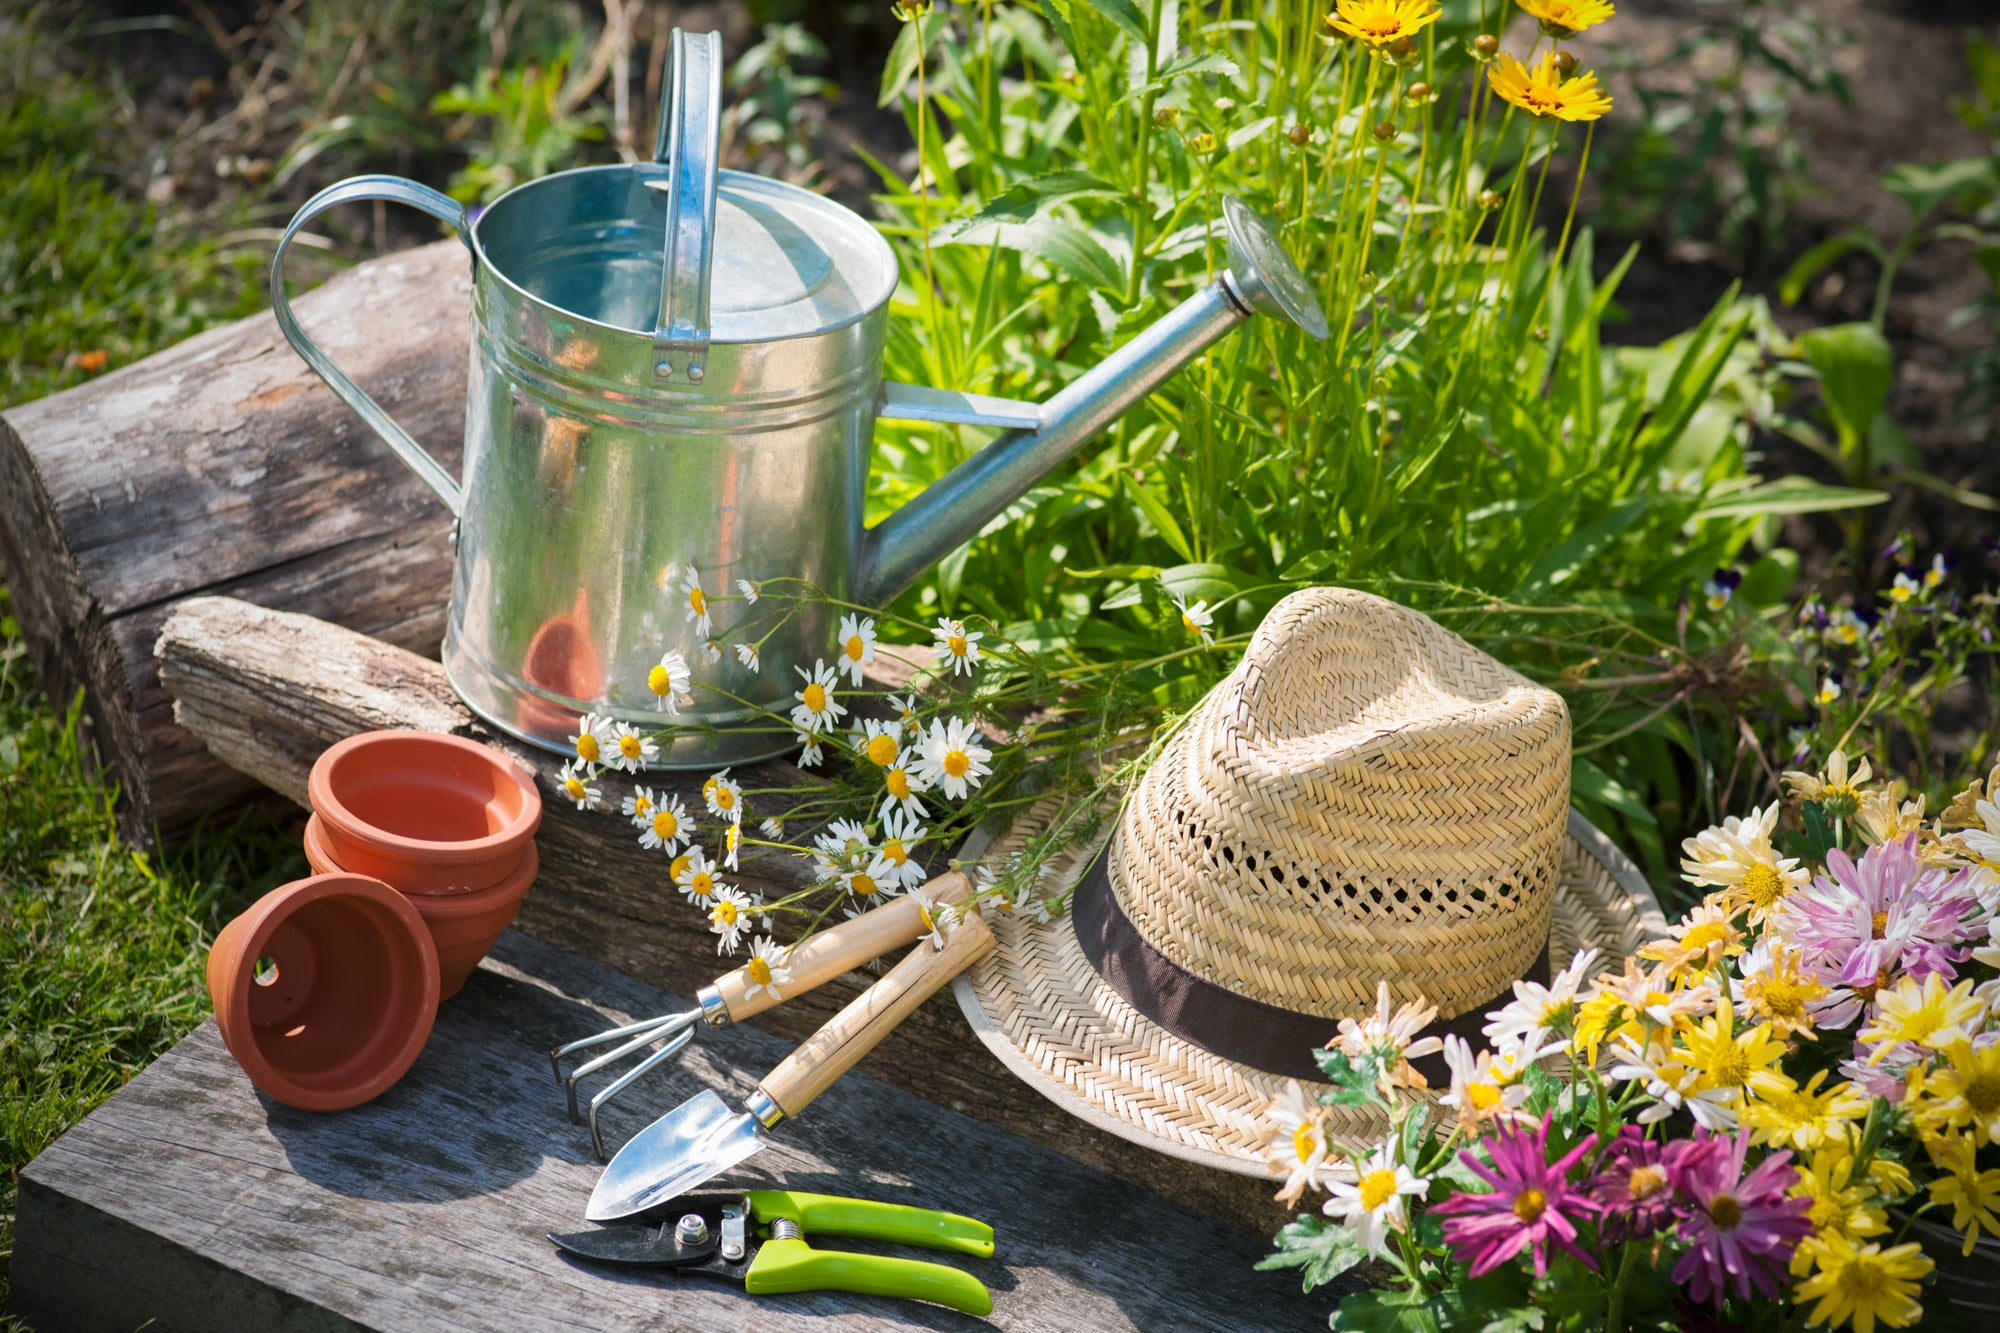 8 tips to save your garden through the summer heat waves